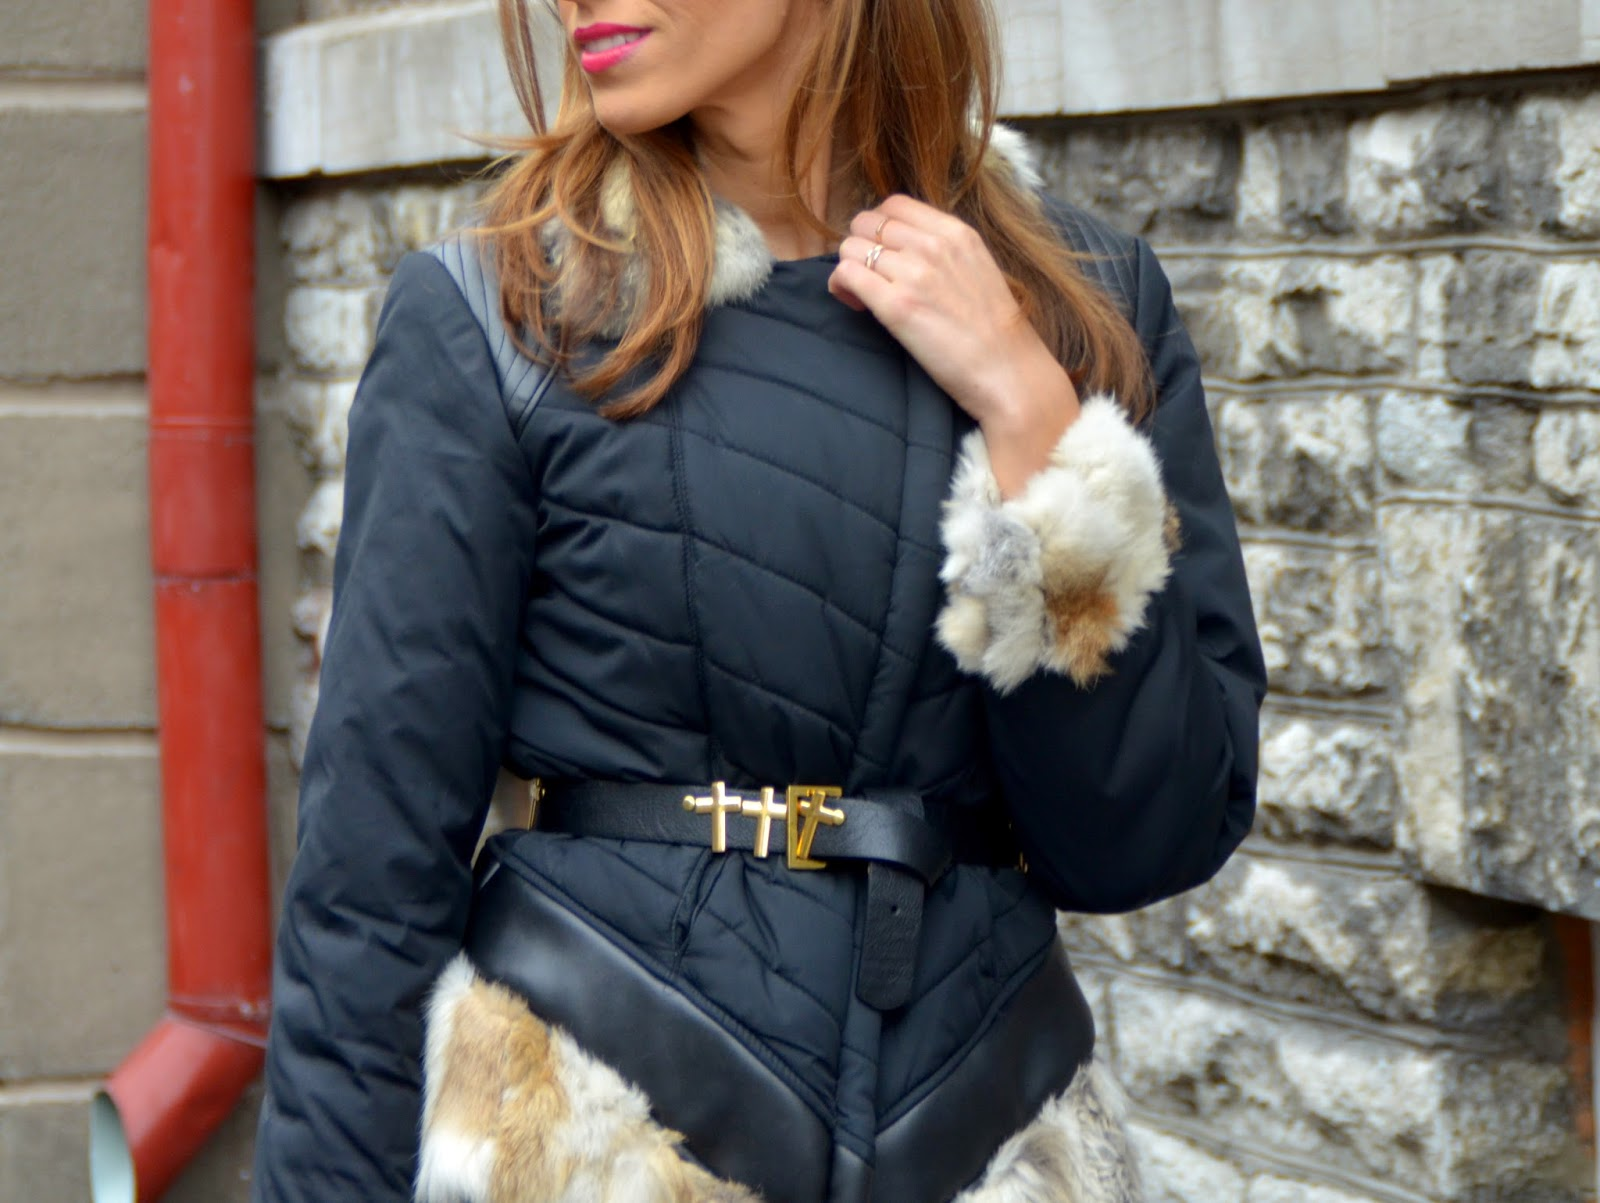 rino-pelle-jacket-rabbit-fur-sleeves-collar-hm-waist-belt